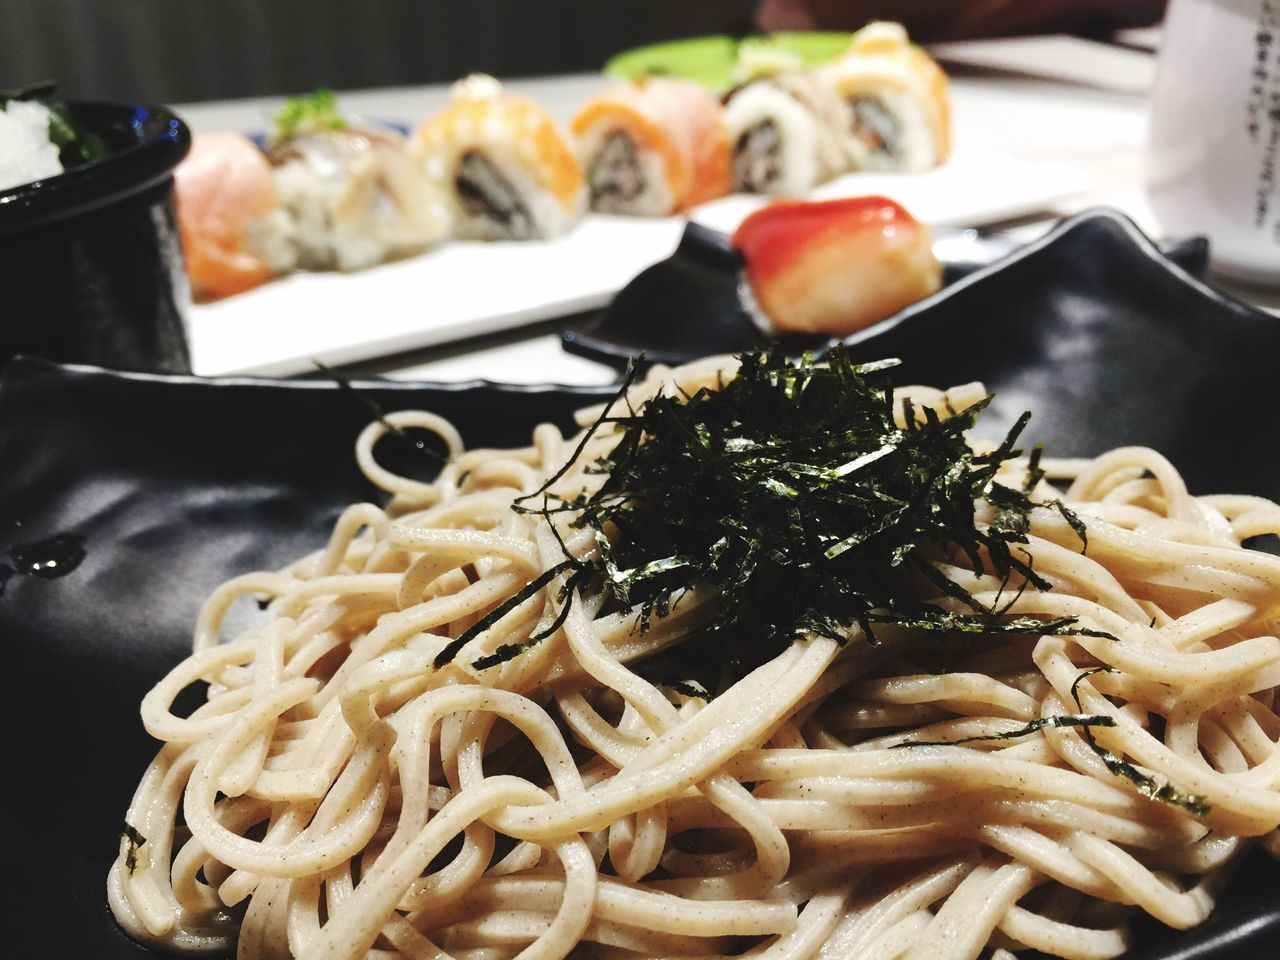 Food Food And Drink Indoors  Ready-to-eat Freshness Close-up Foodporn Meal Serving Size Plate Japanese Food Culture Temptation Main Course Appetizer Focus On Foreground Food Styling No People Served Food State EyeEm Gallery Eyeem Singapore